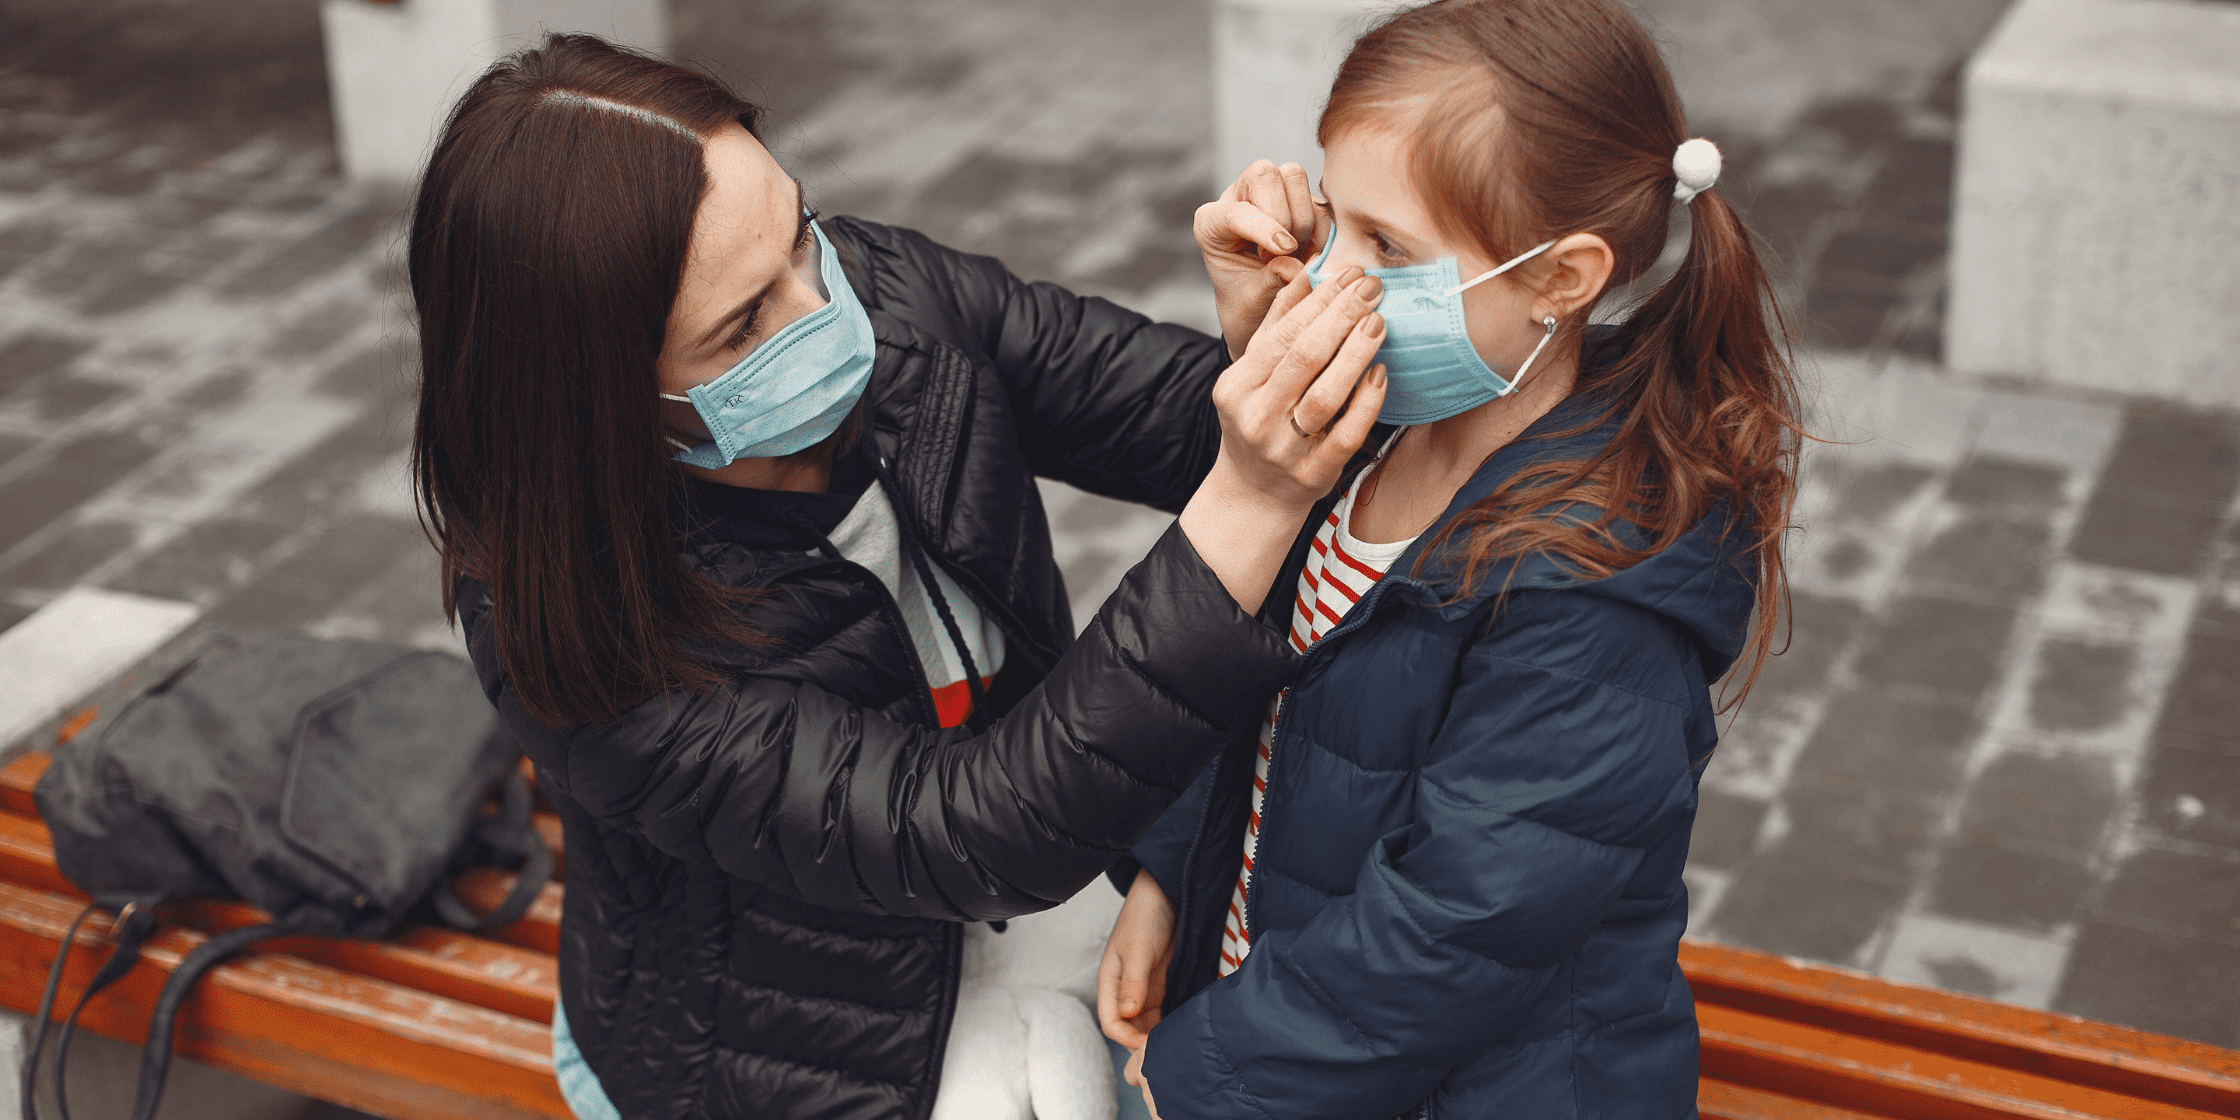 Mother and daughter putting on cloth masks